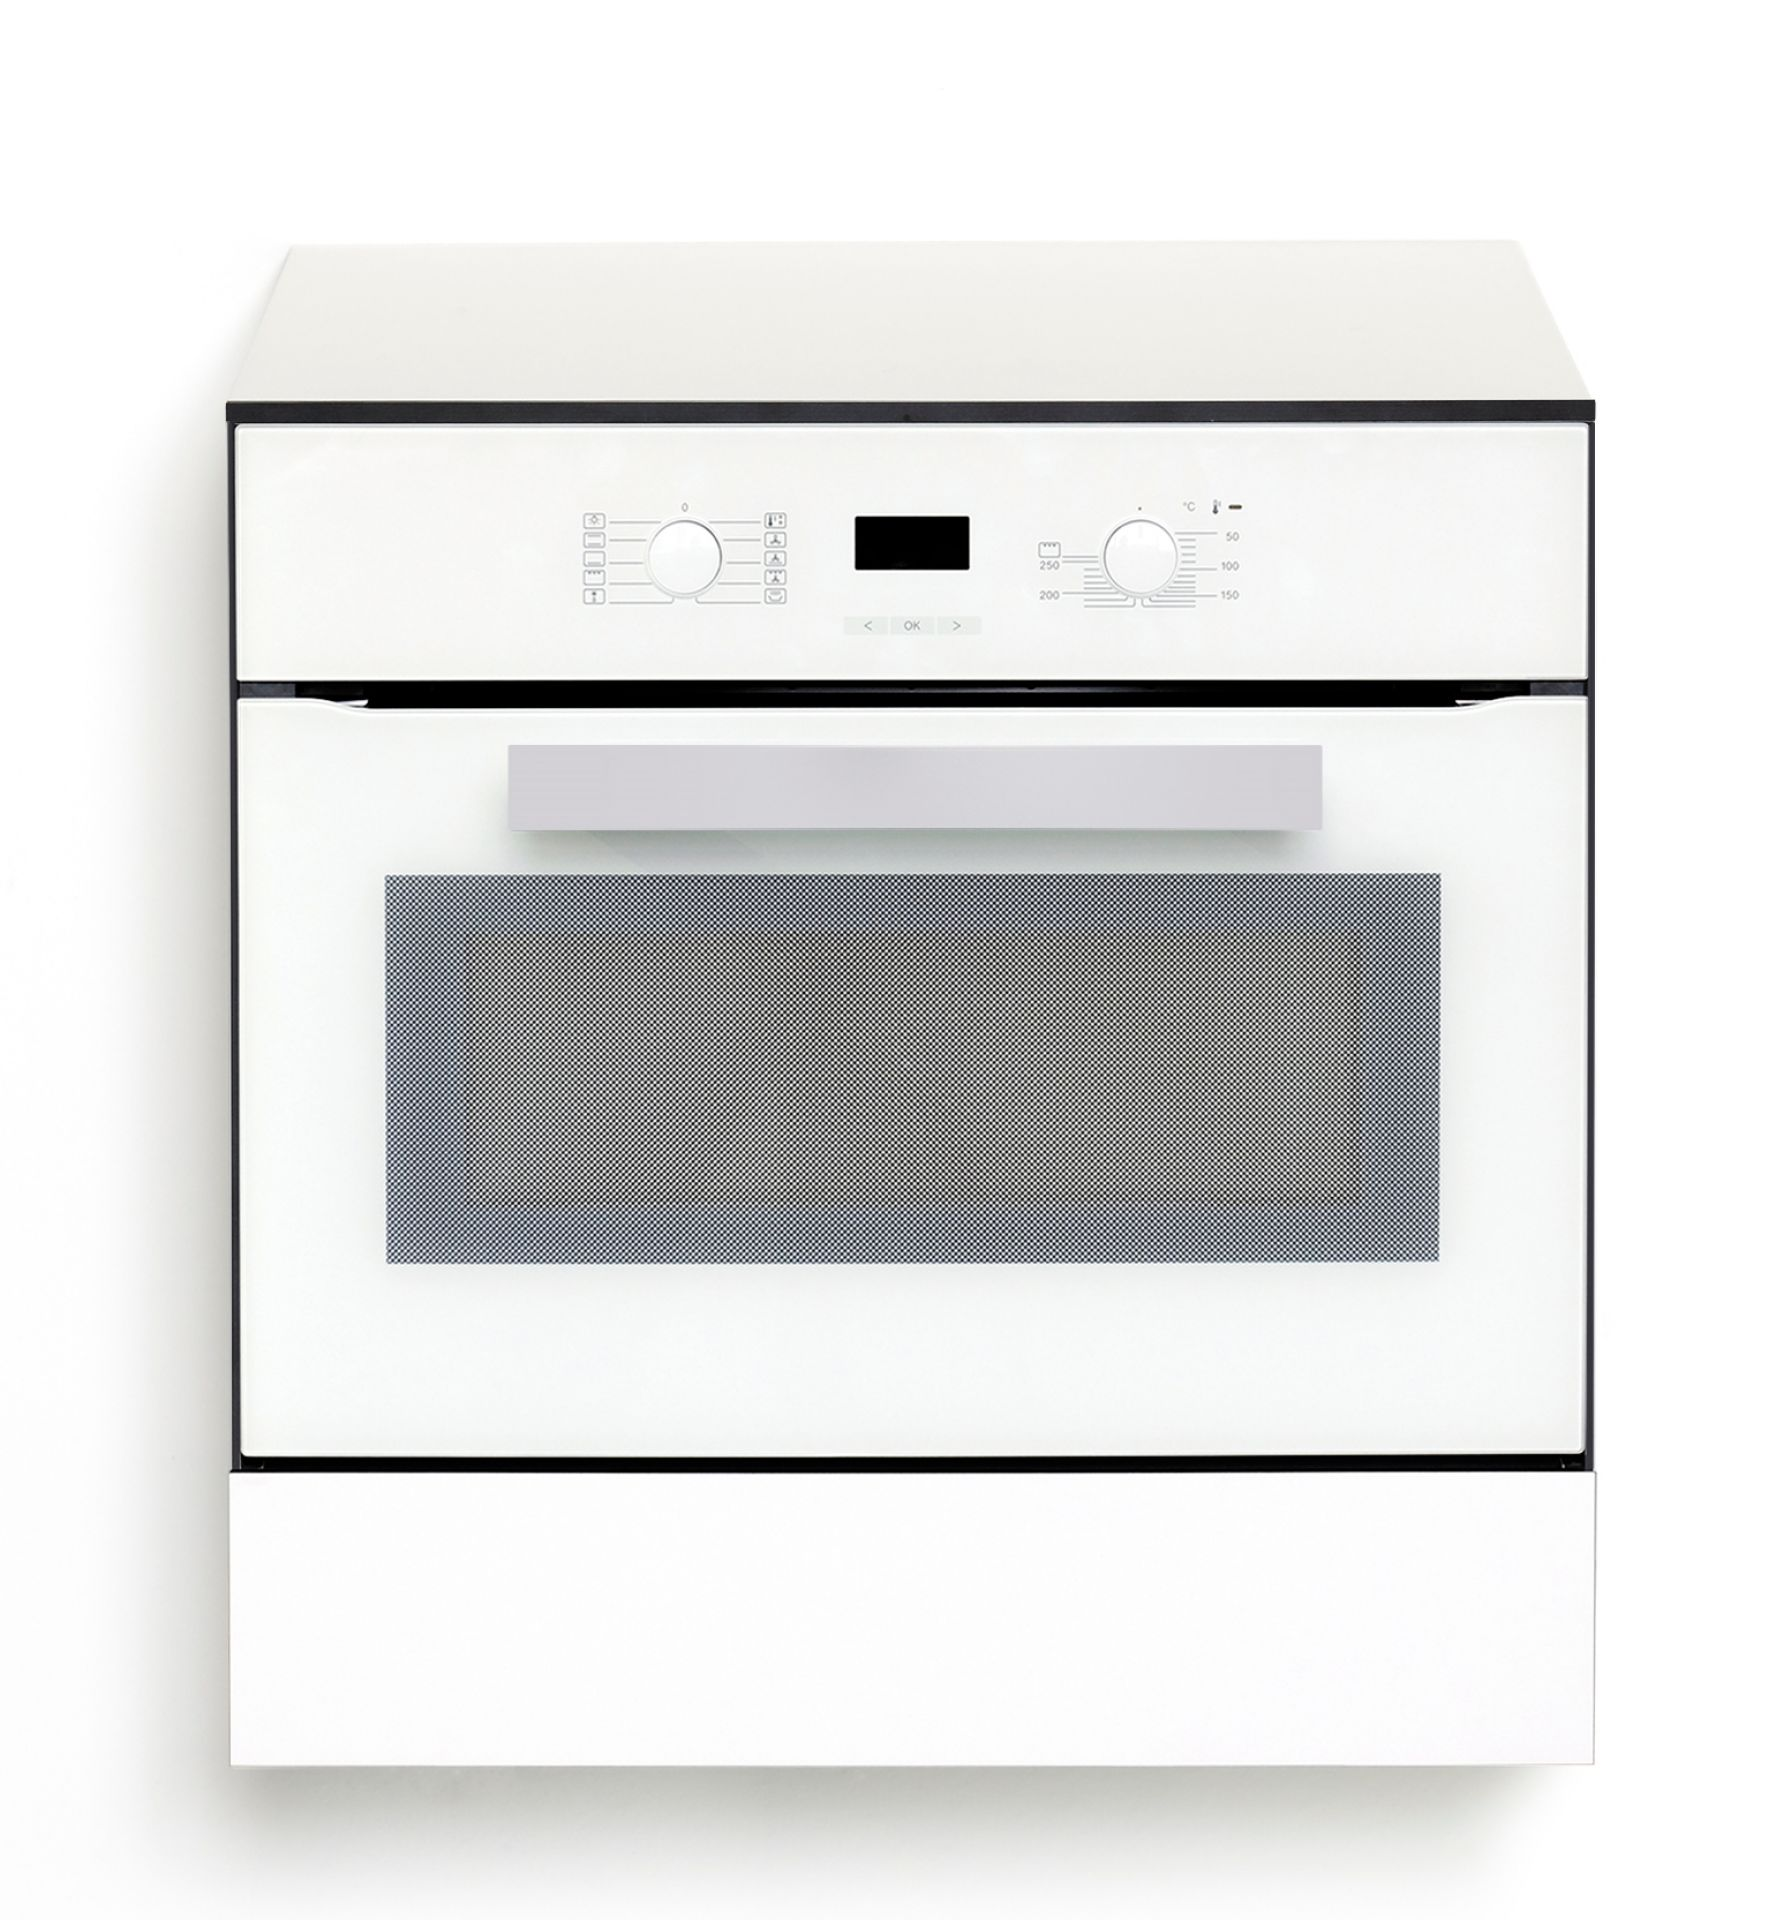 SL 3 Oven module with integrated drawer Miniki White